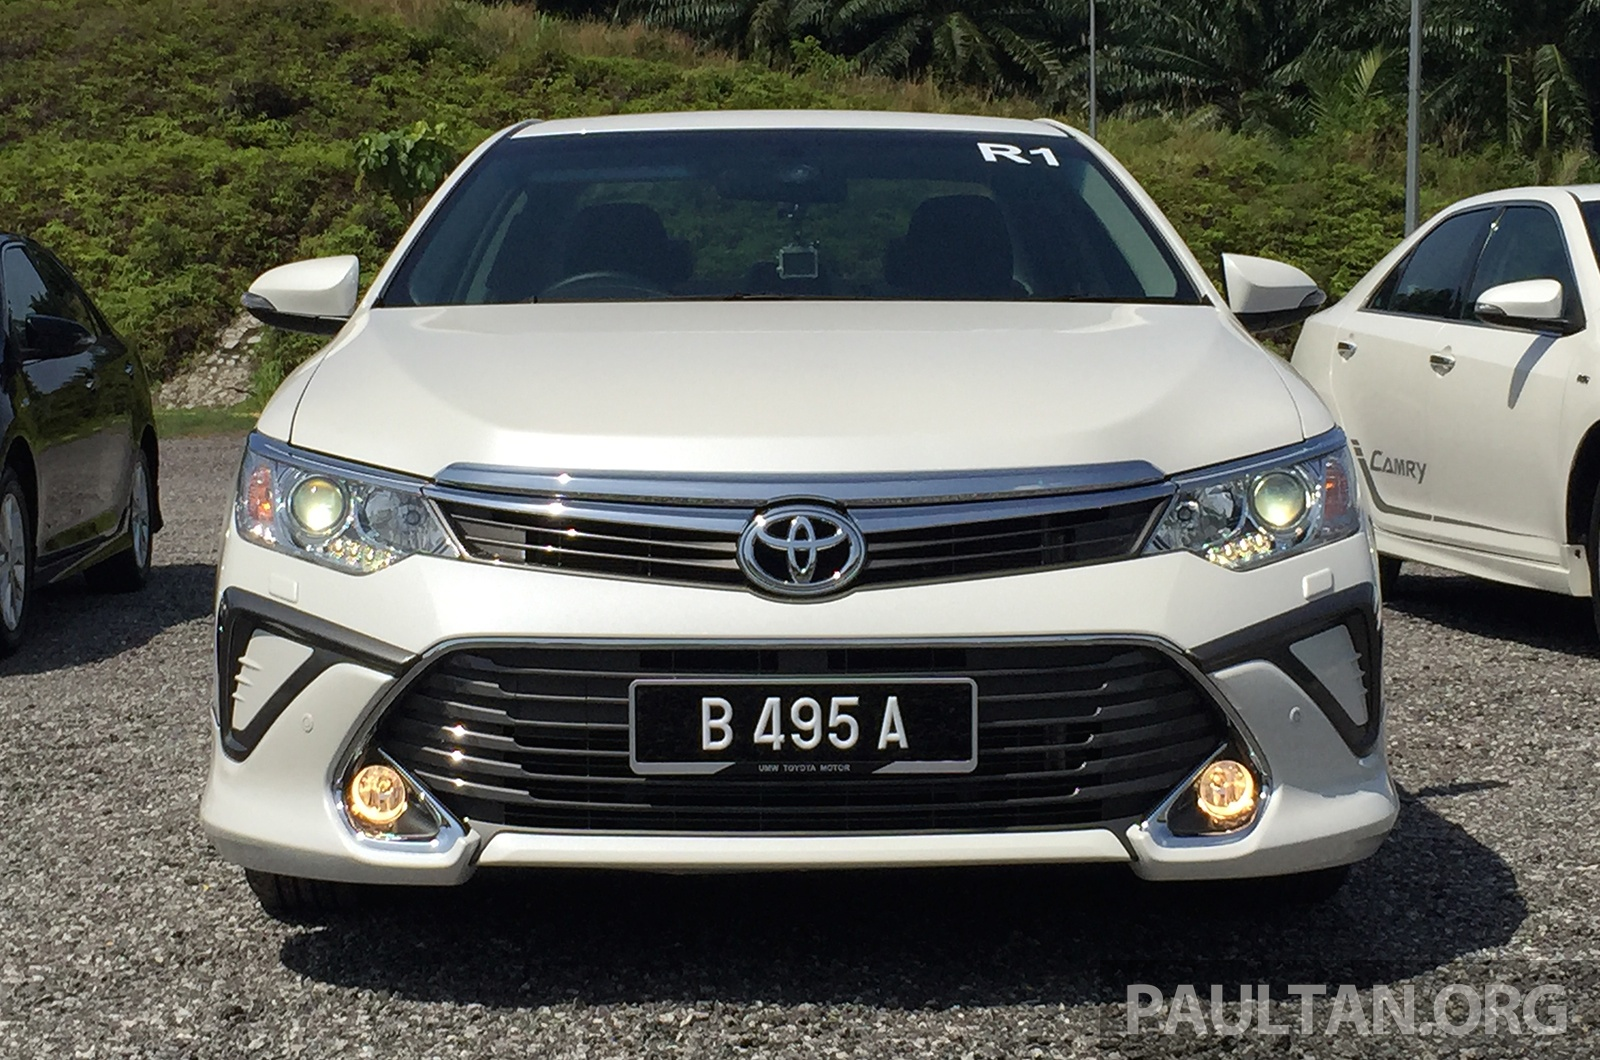 2014 Toyota Corolla Vs 2013 Model Whats Changed Quick Take Review furthermore Photos together with Audi A6 Matrix Rear Seat Review likewise Cla 250 11 moreover 2019 Toyota Rav4 First Look Review. on first toyota camry